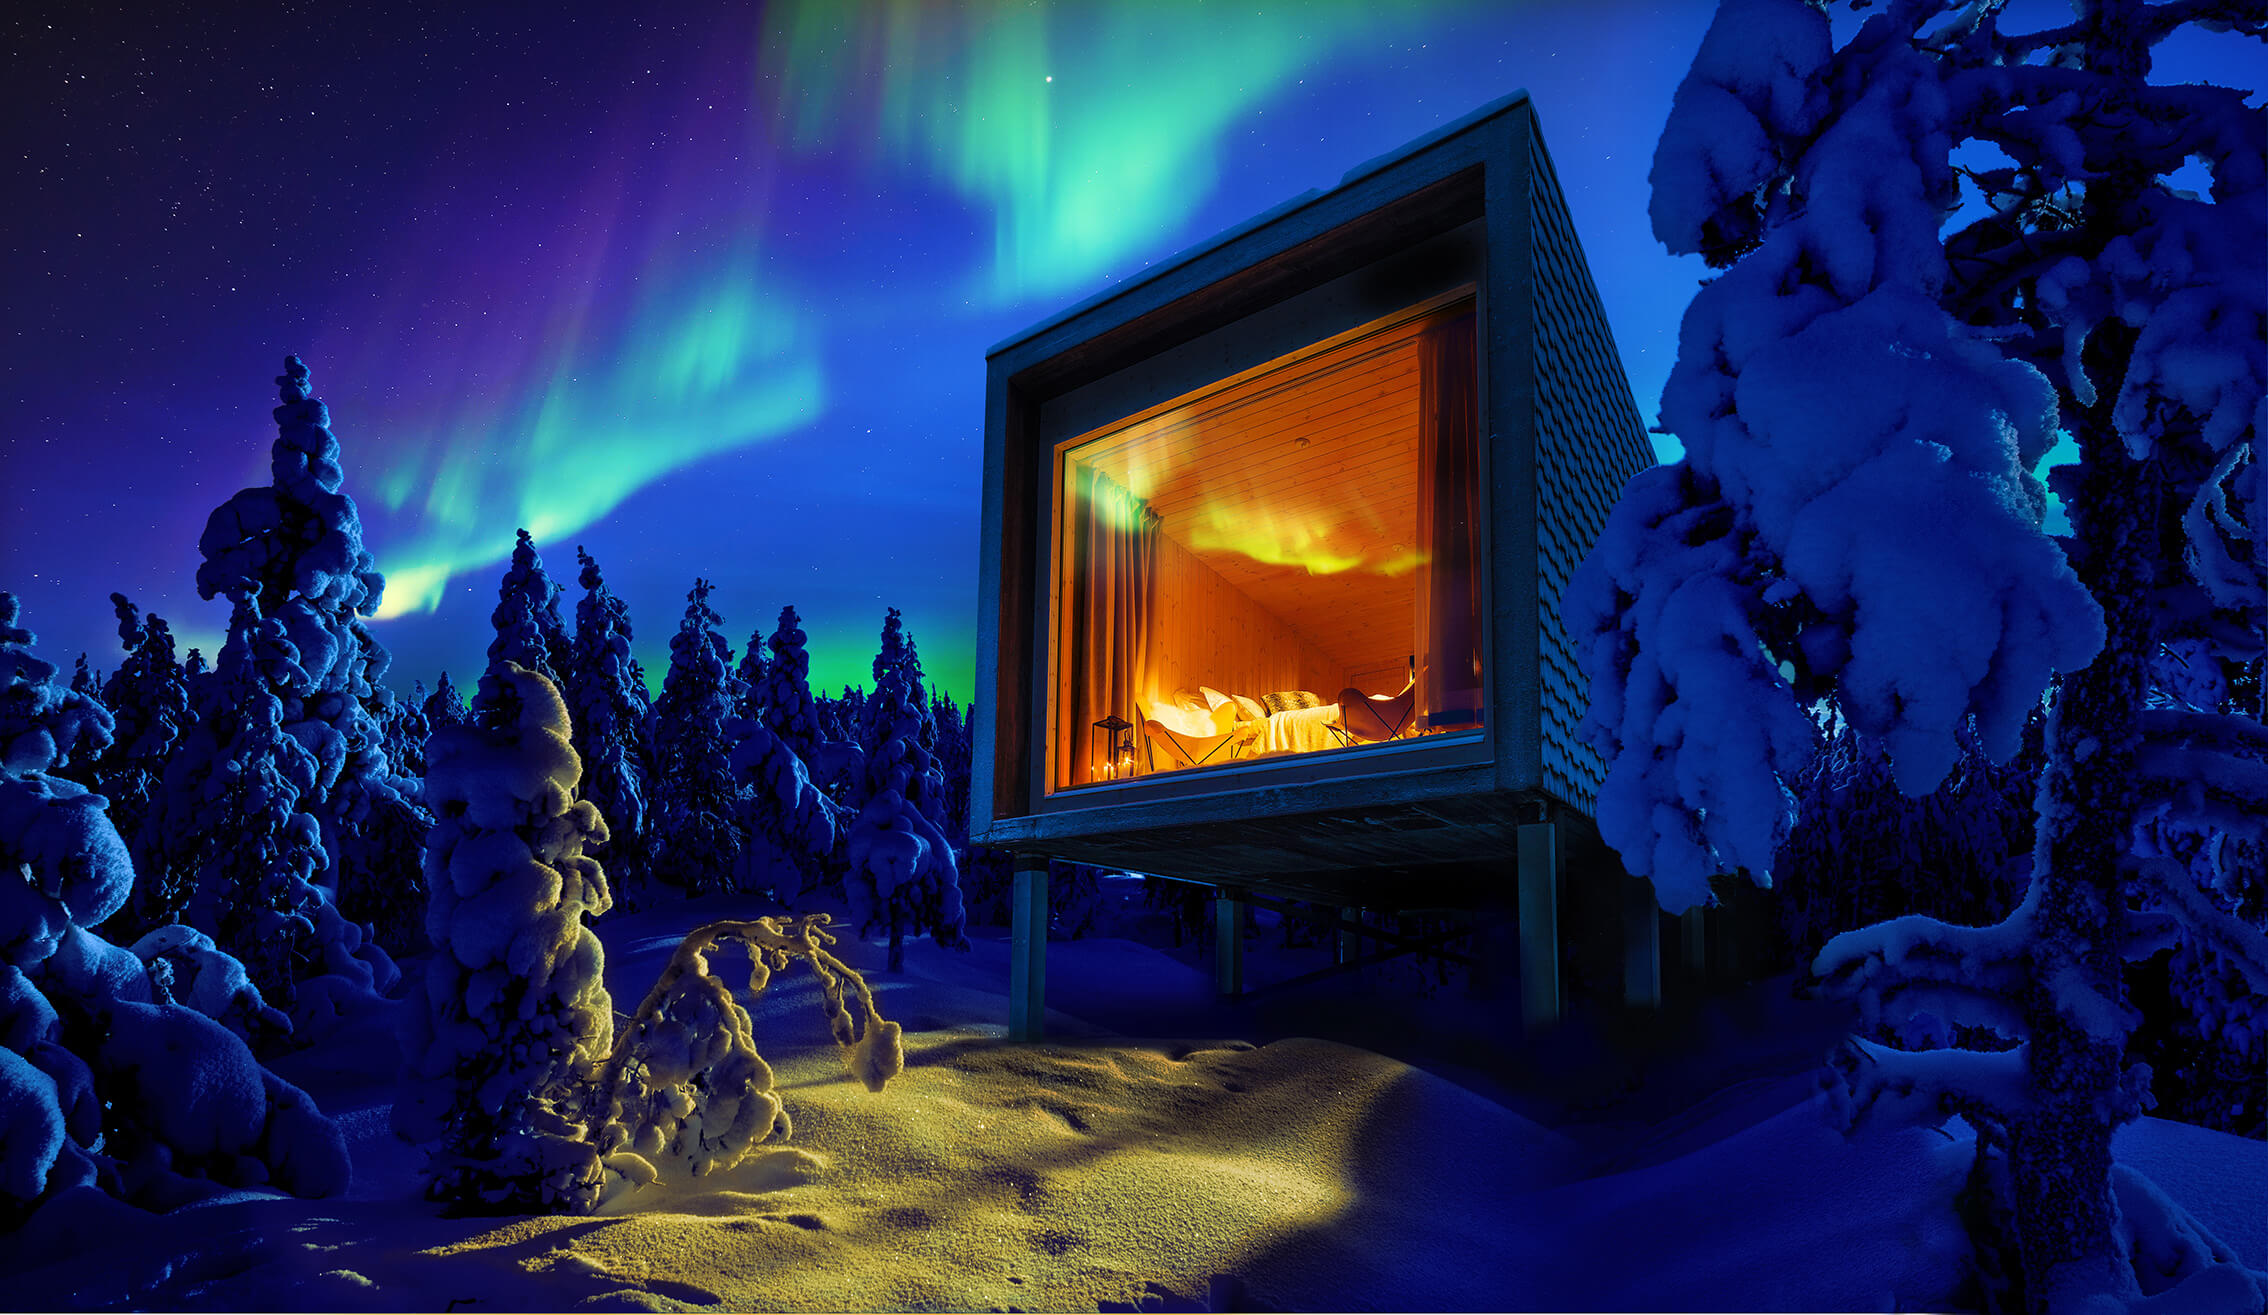 Arctic-TreeHouse-Hotel-suite-from-outside.jpg